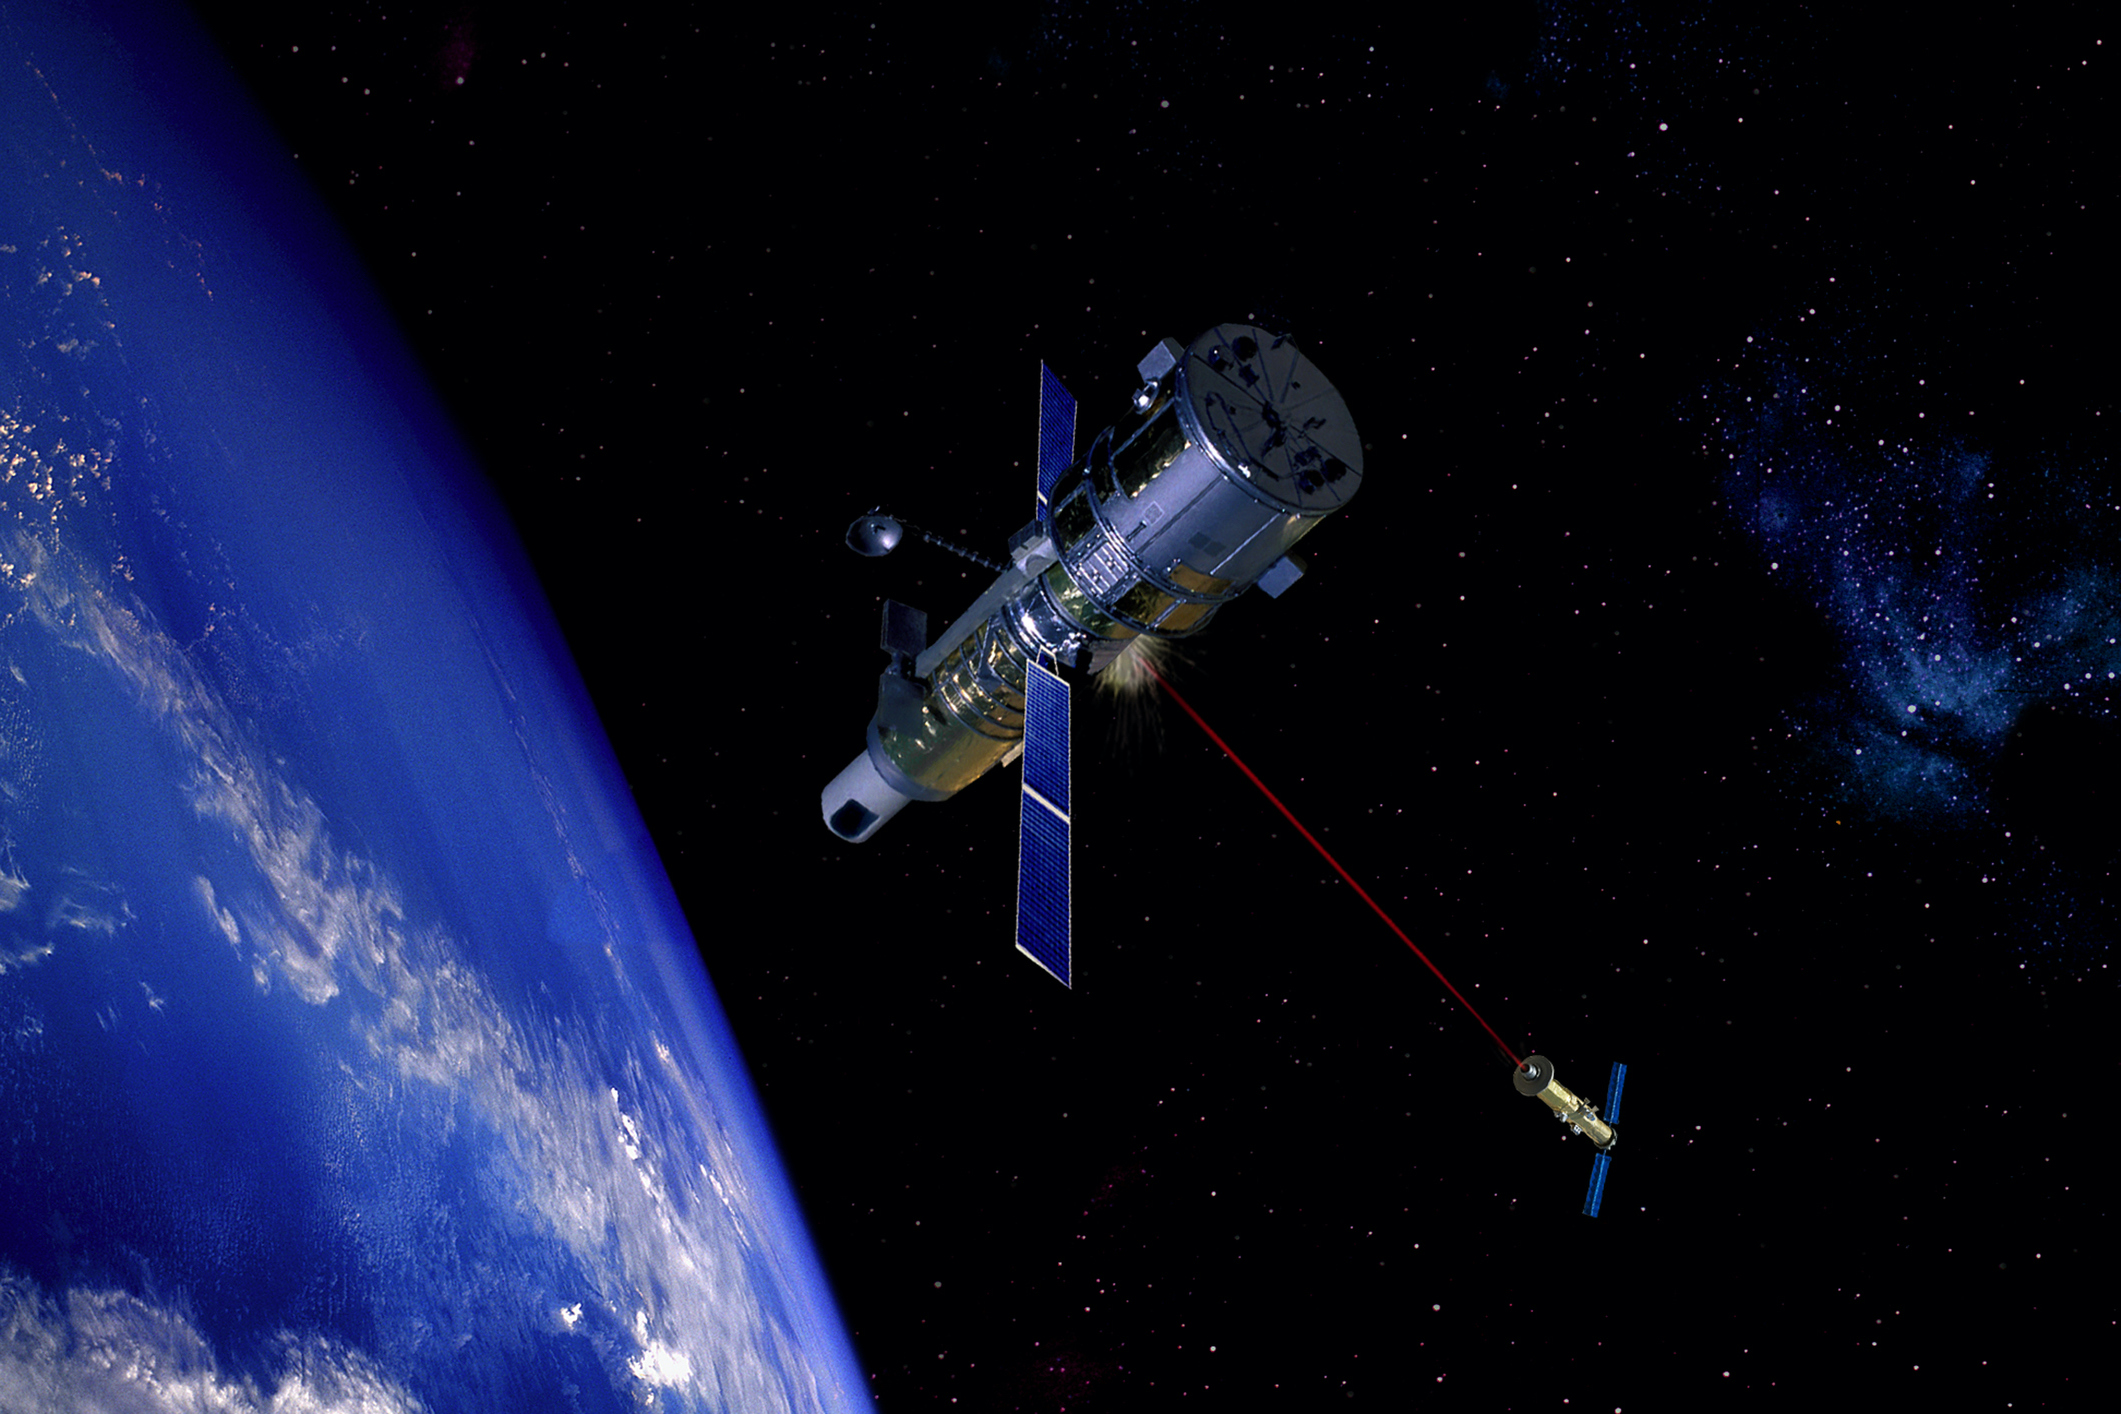 Russian Federation tested an anti-satellite weapon in space